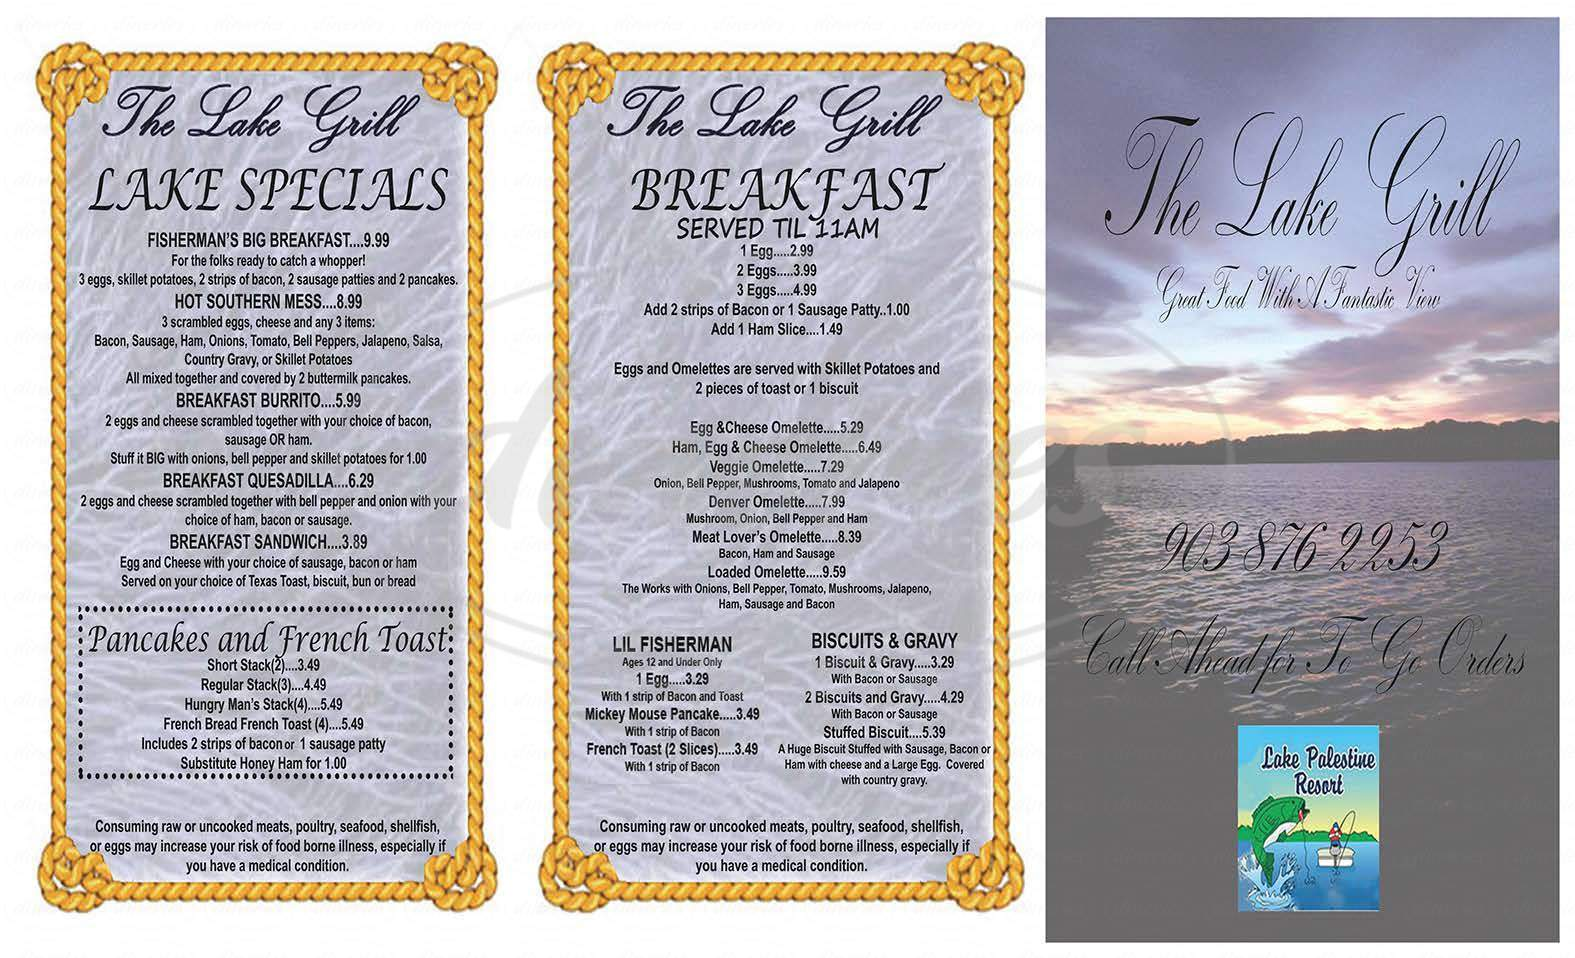 menu for The Lake Grill at Lake Palestine Resort